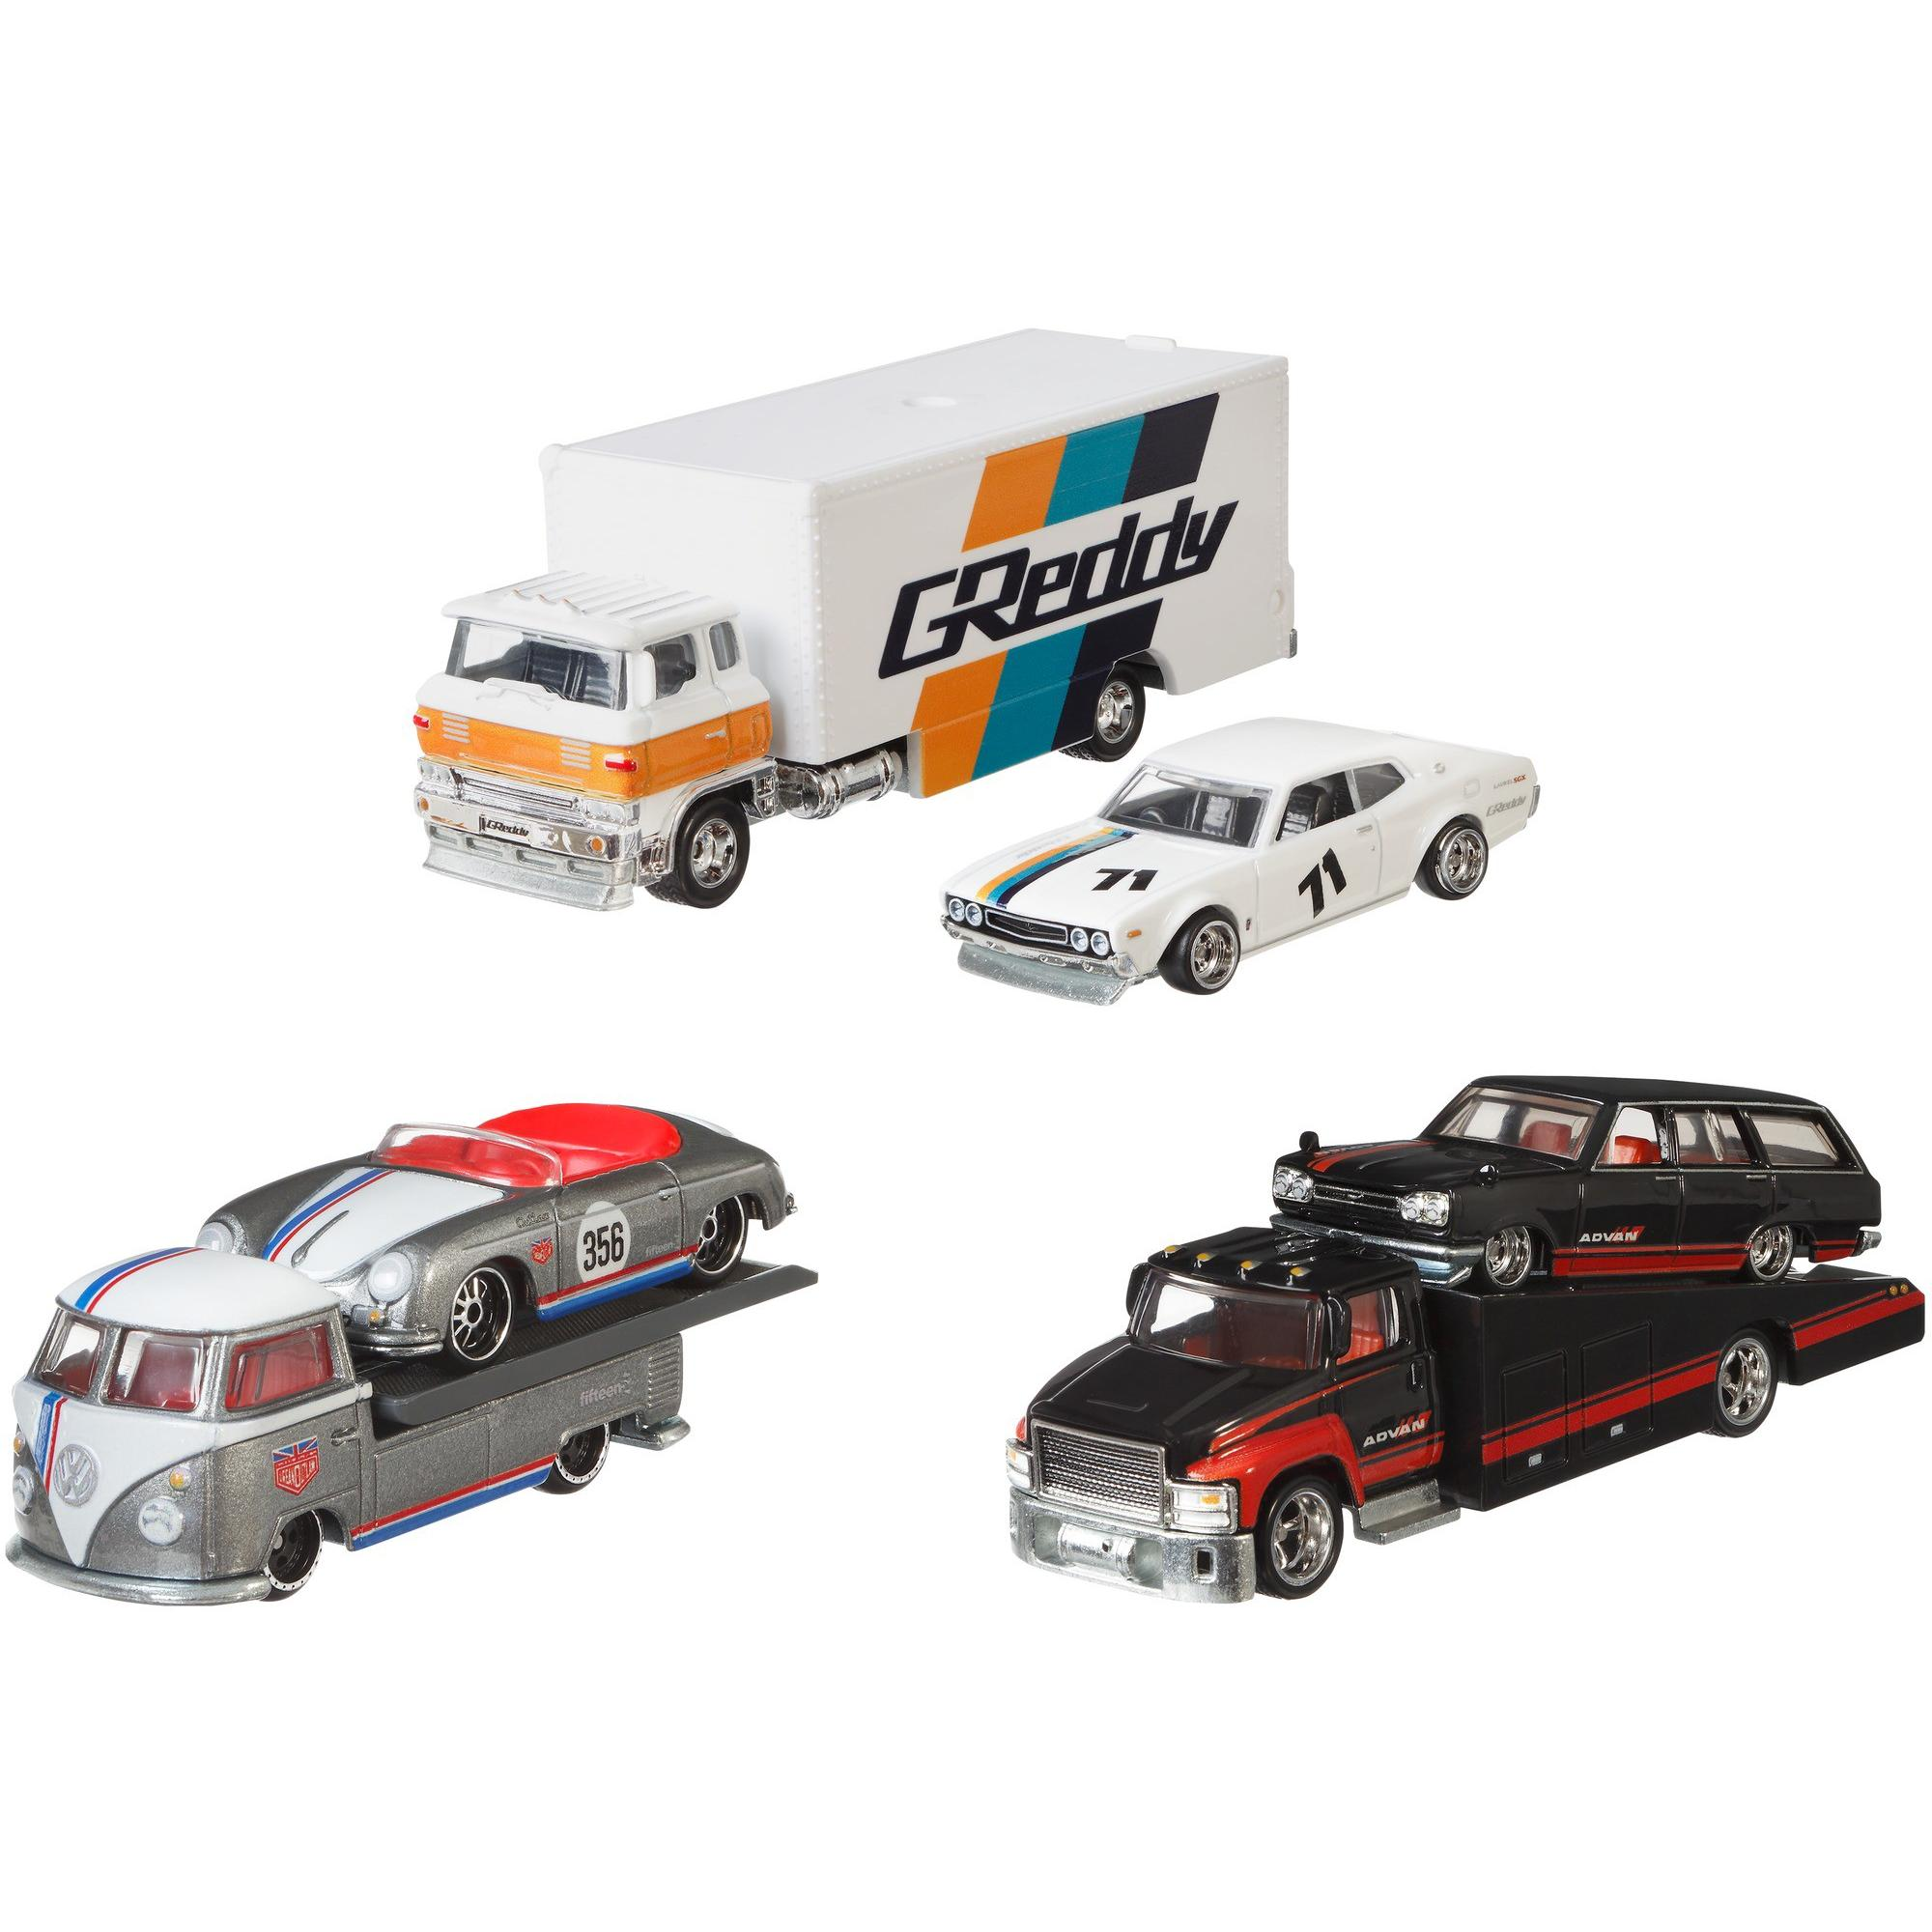 Hot Wheels Team Transport 1:64 Scale Vehicle (Styles May Vary)